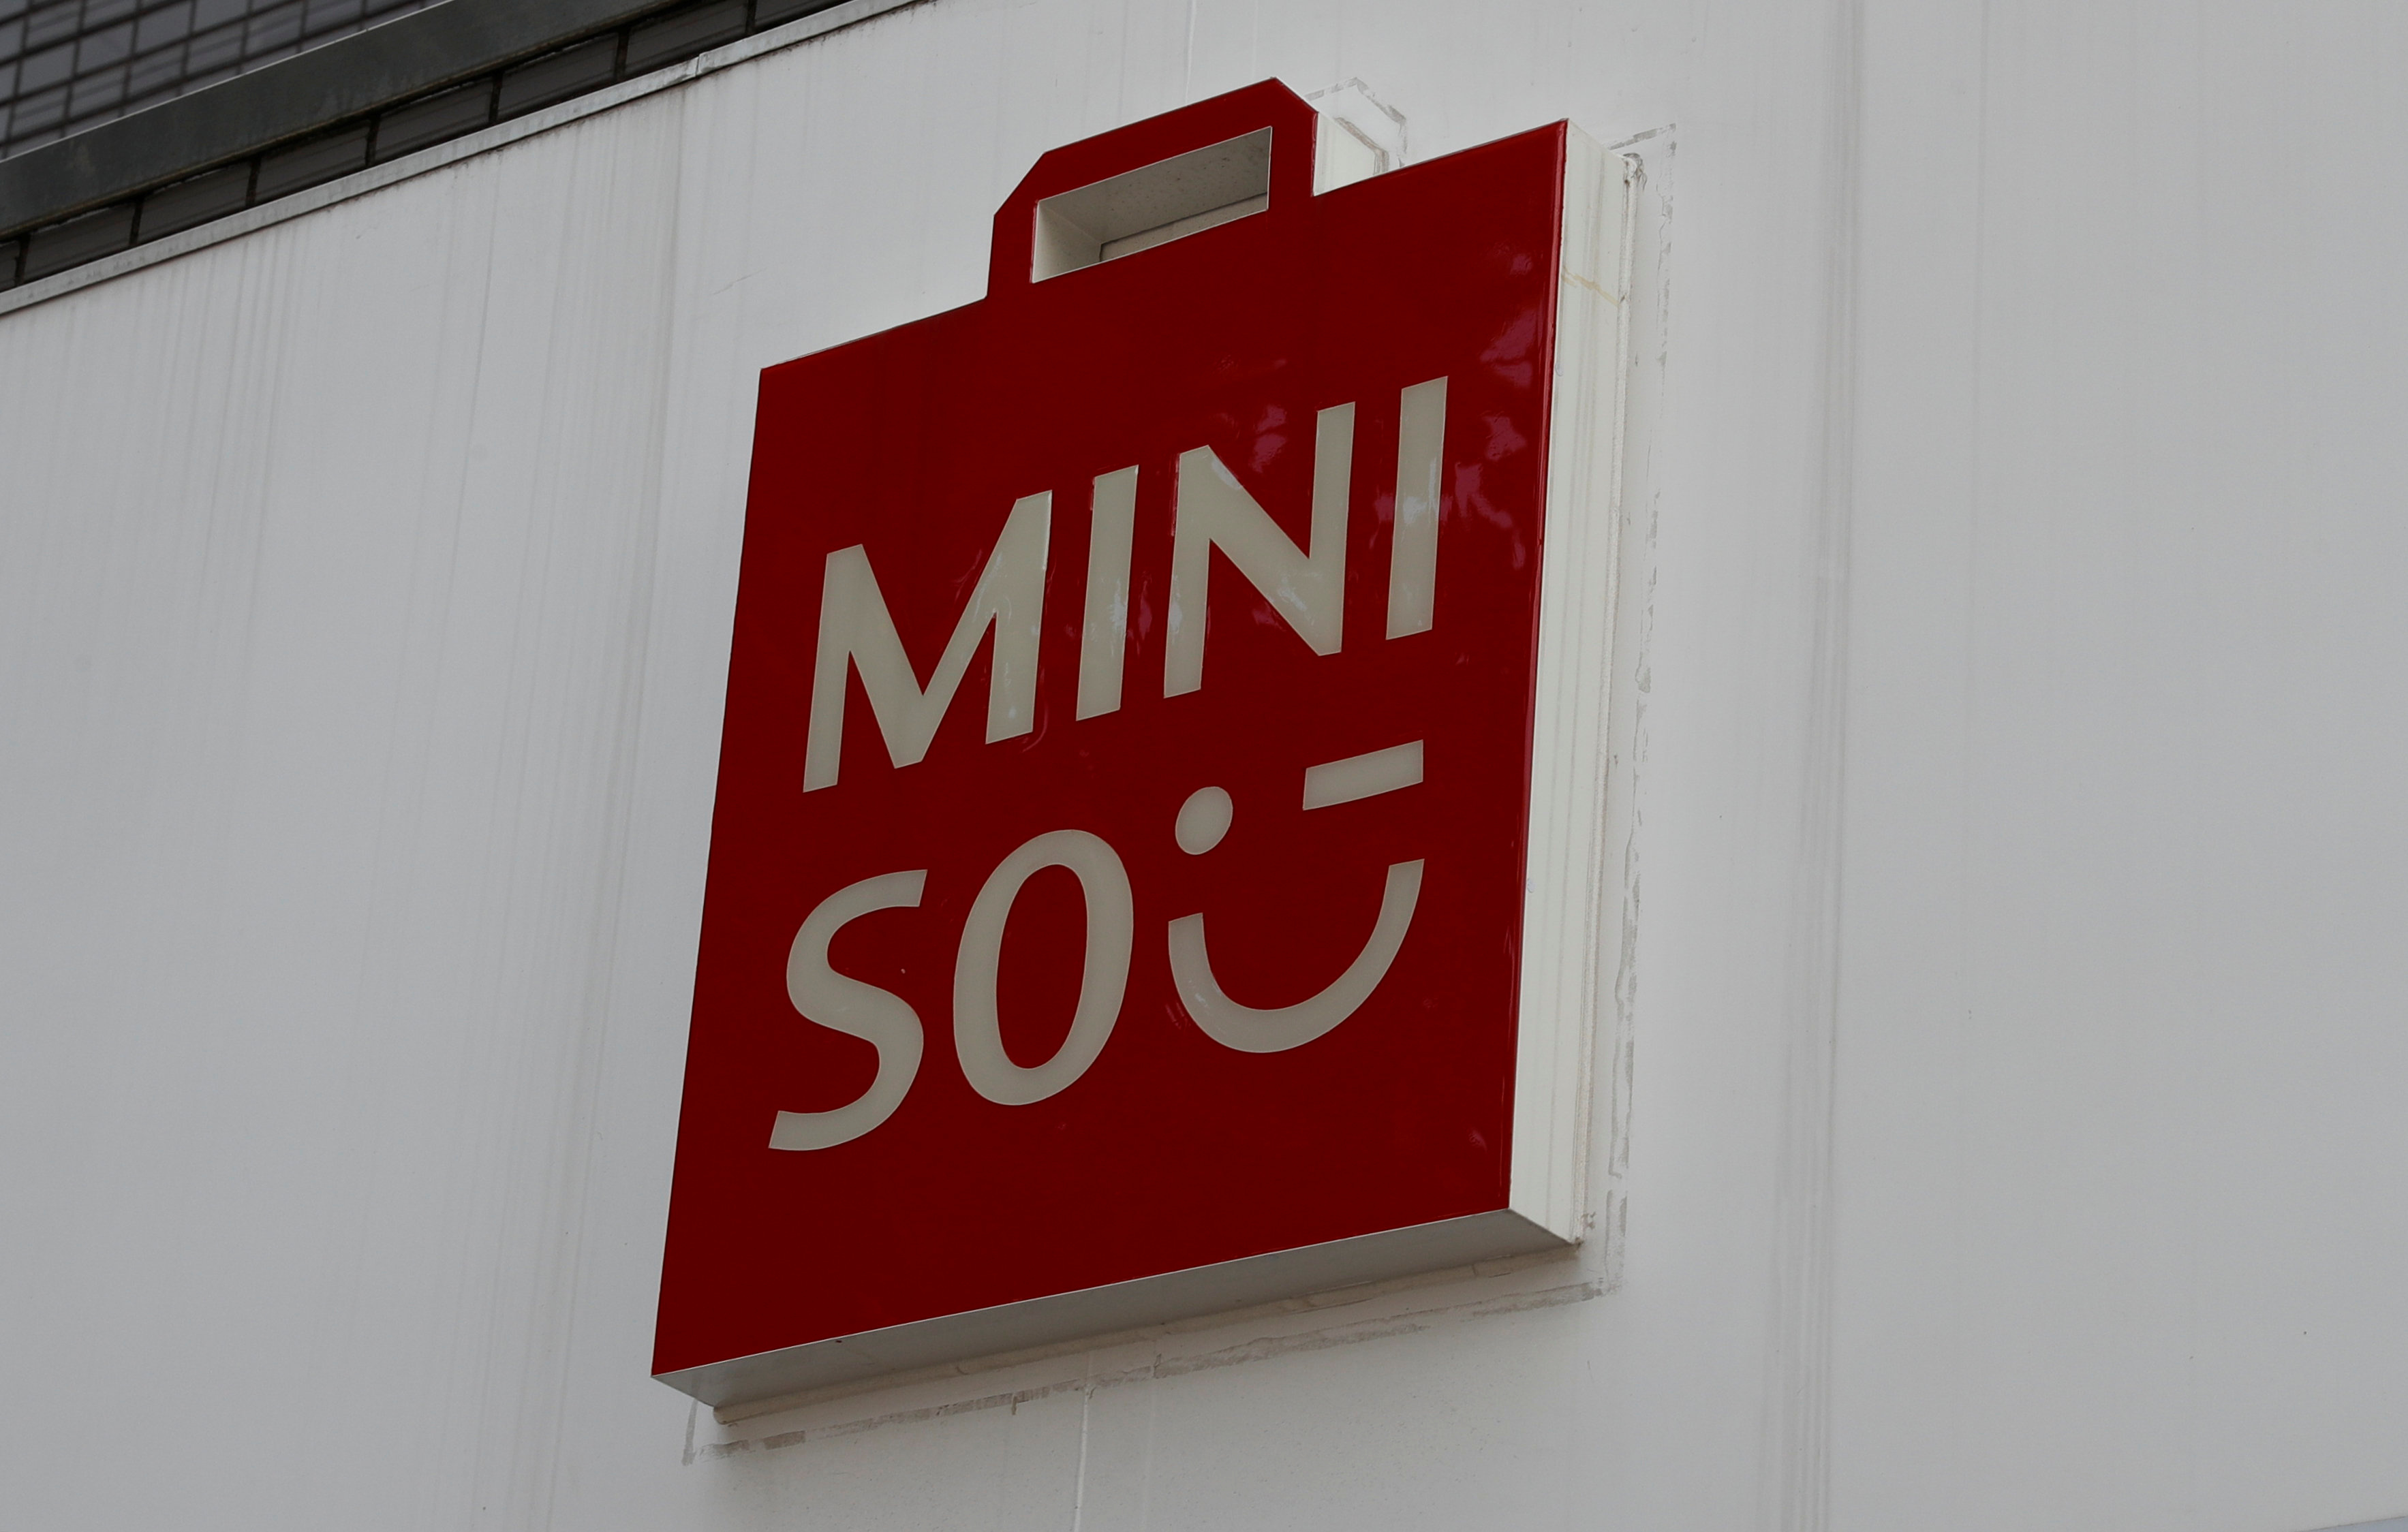 The logo of Chinese low-cost lifestyle and consumer products retailer Miniso is pictured in Tokyo, Japan August 10, 2018. REUTERS/Kim Kyung-Hoon